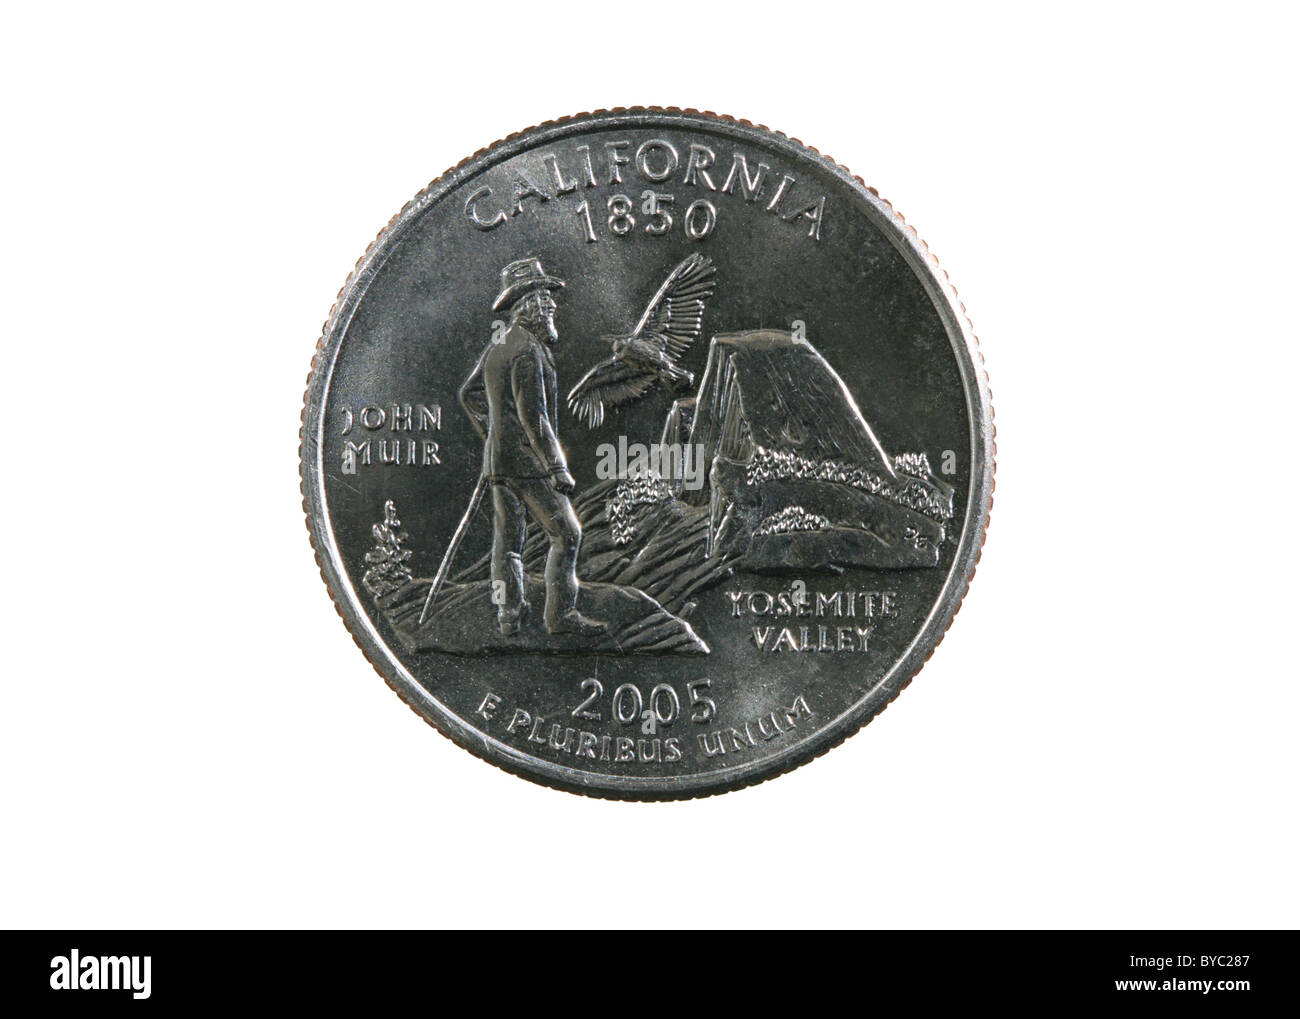 California state quarter coin isolated on white background - Stock Image